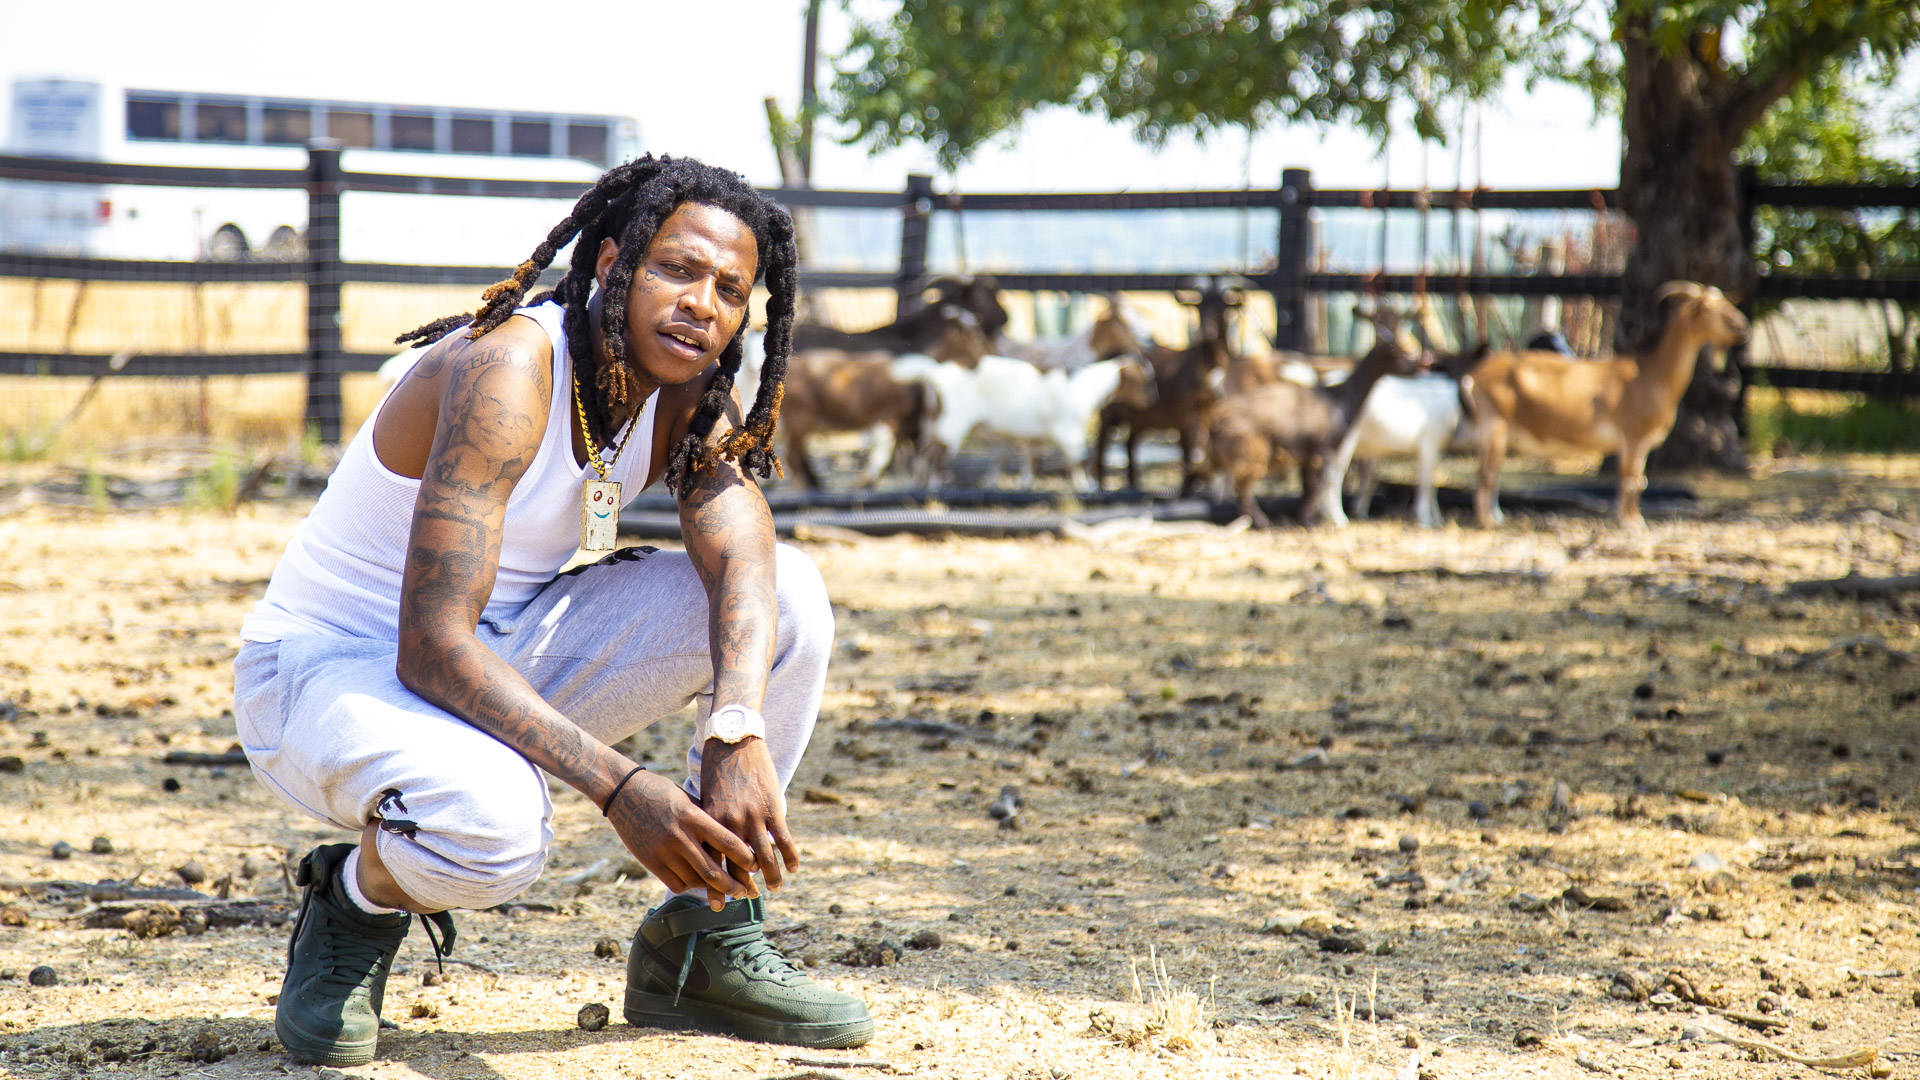 Among hay bales and baby goats, the Bay Area rap star discusses leaving Vallejo, police brutality and his new album, 'The Big Chang Theory.' Estefany Gonzalez